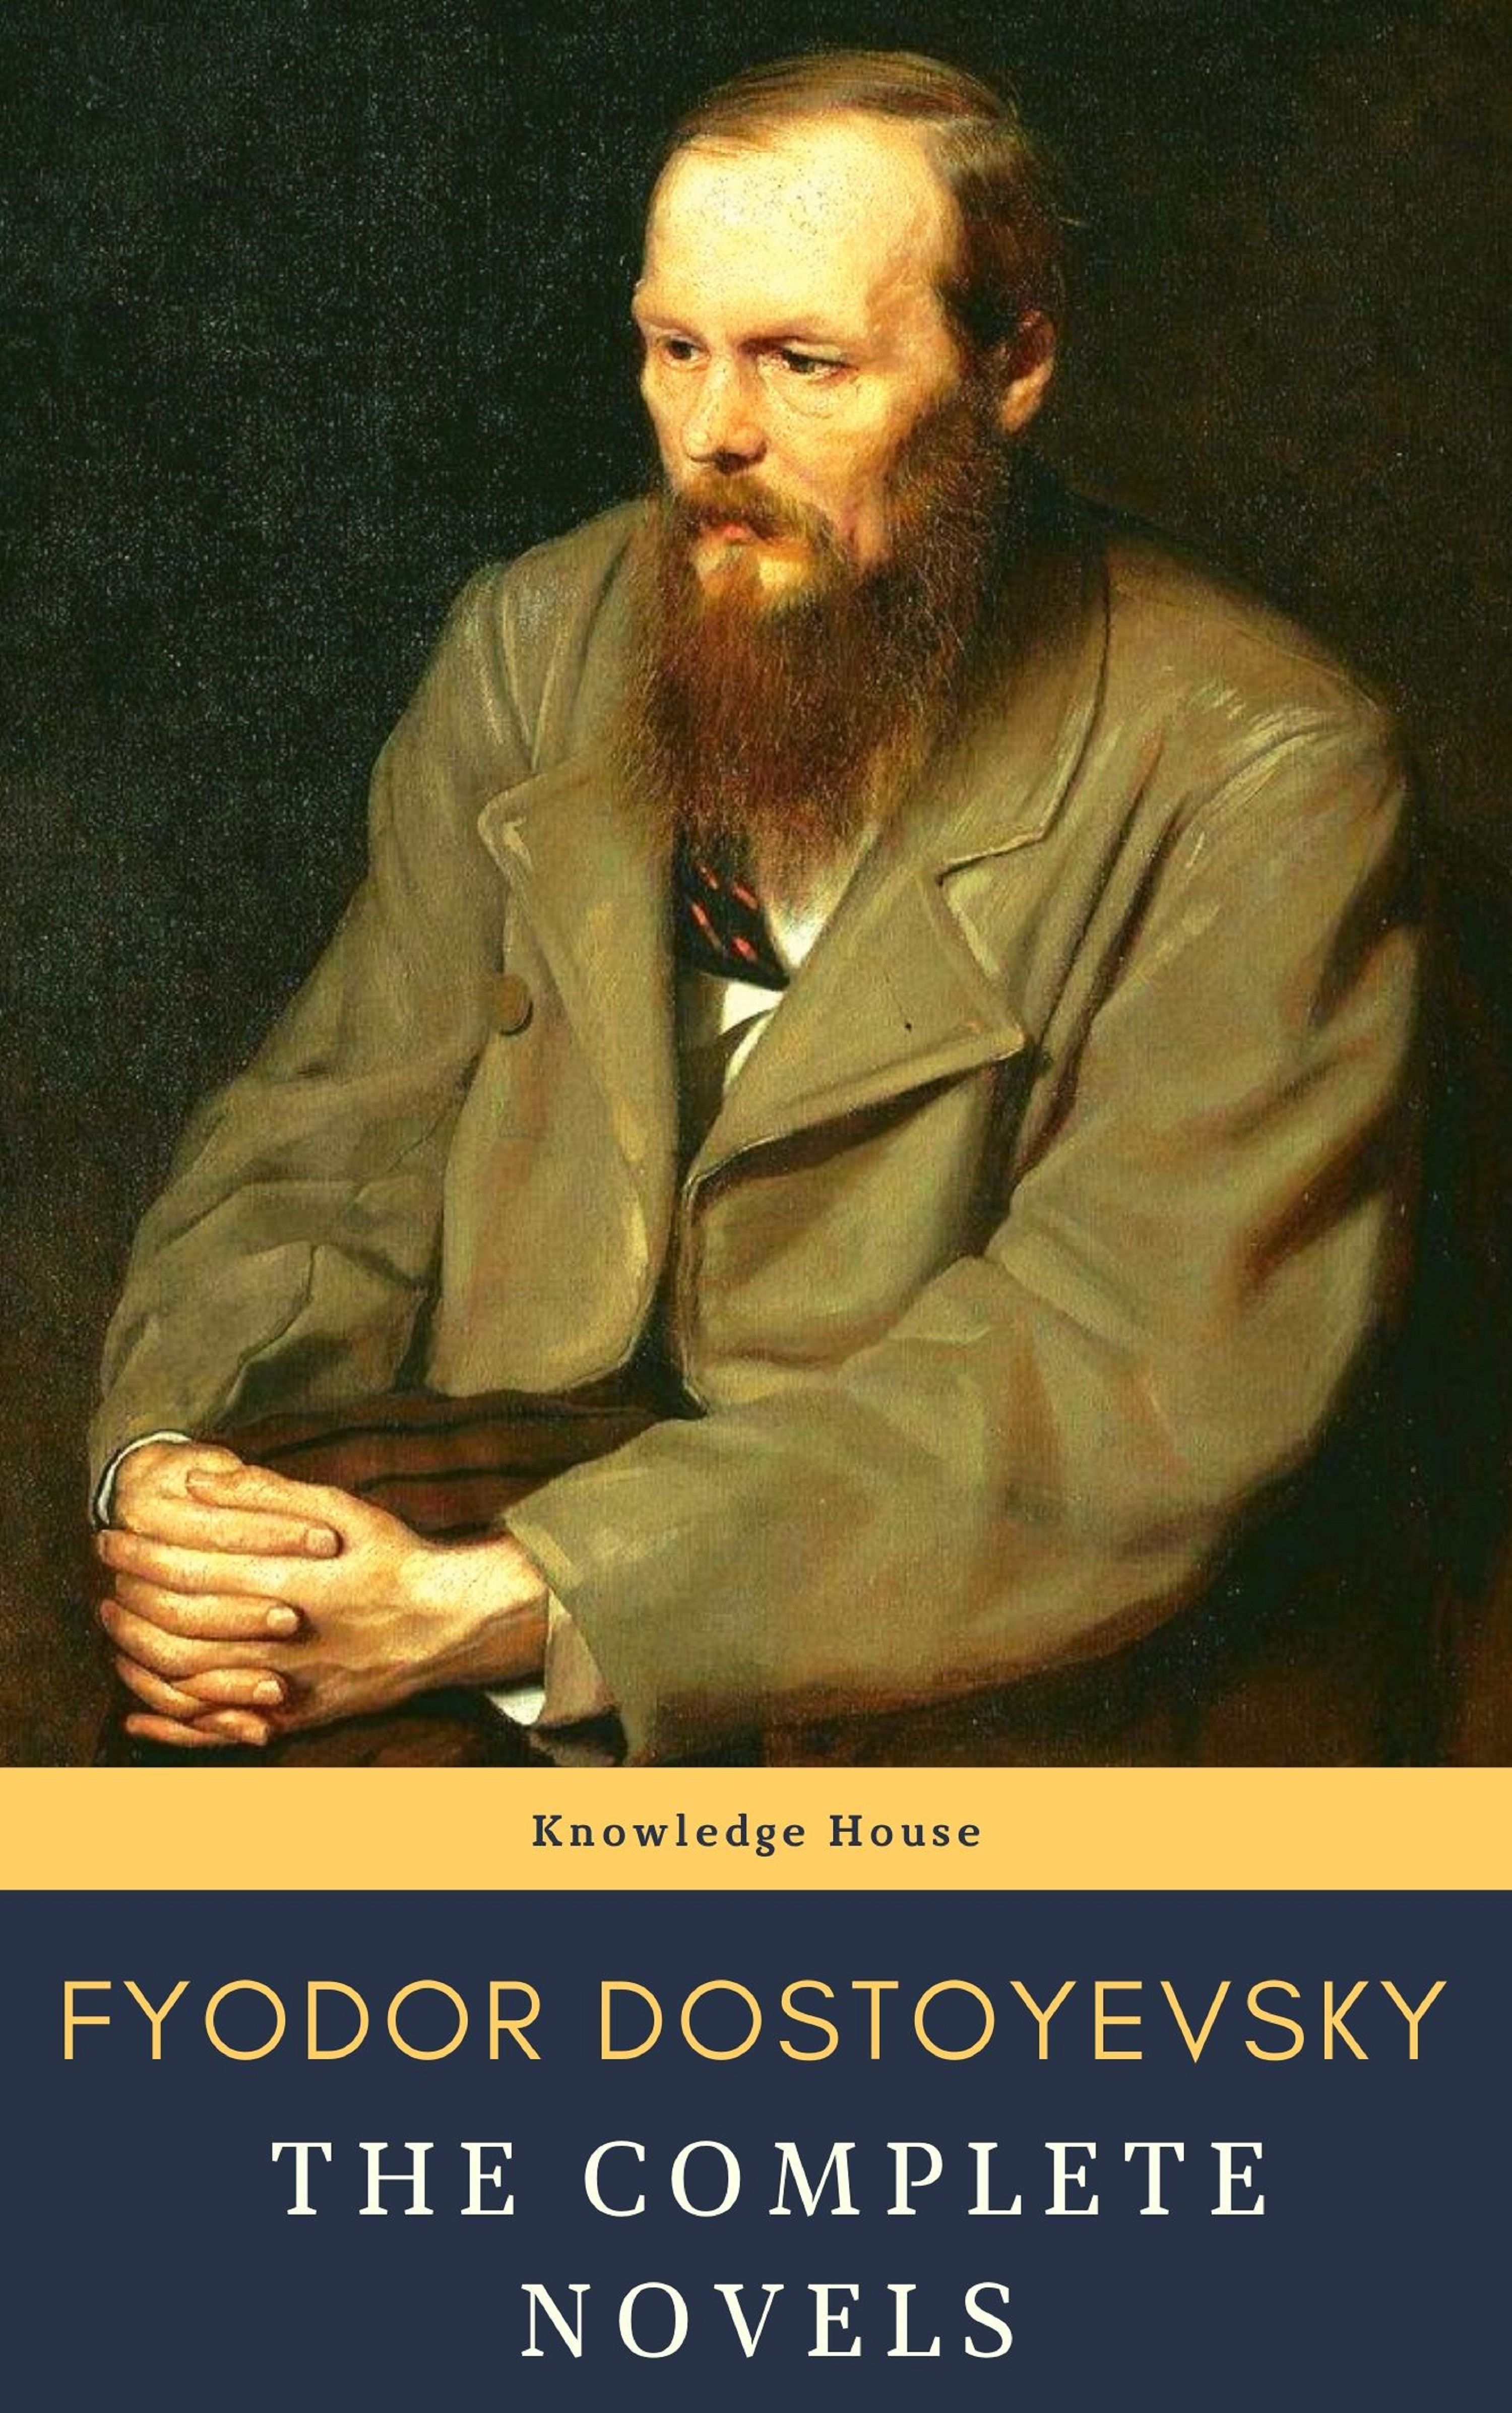 Knowledge house Fyodor Dostoyevsky: The Complete Novels the complete book of the flower fairies